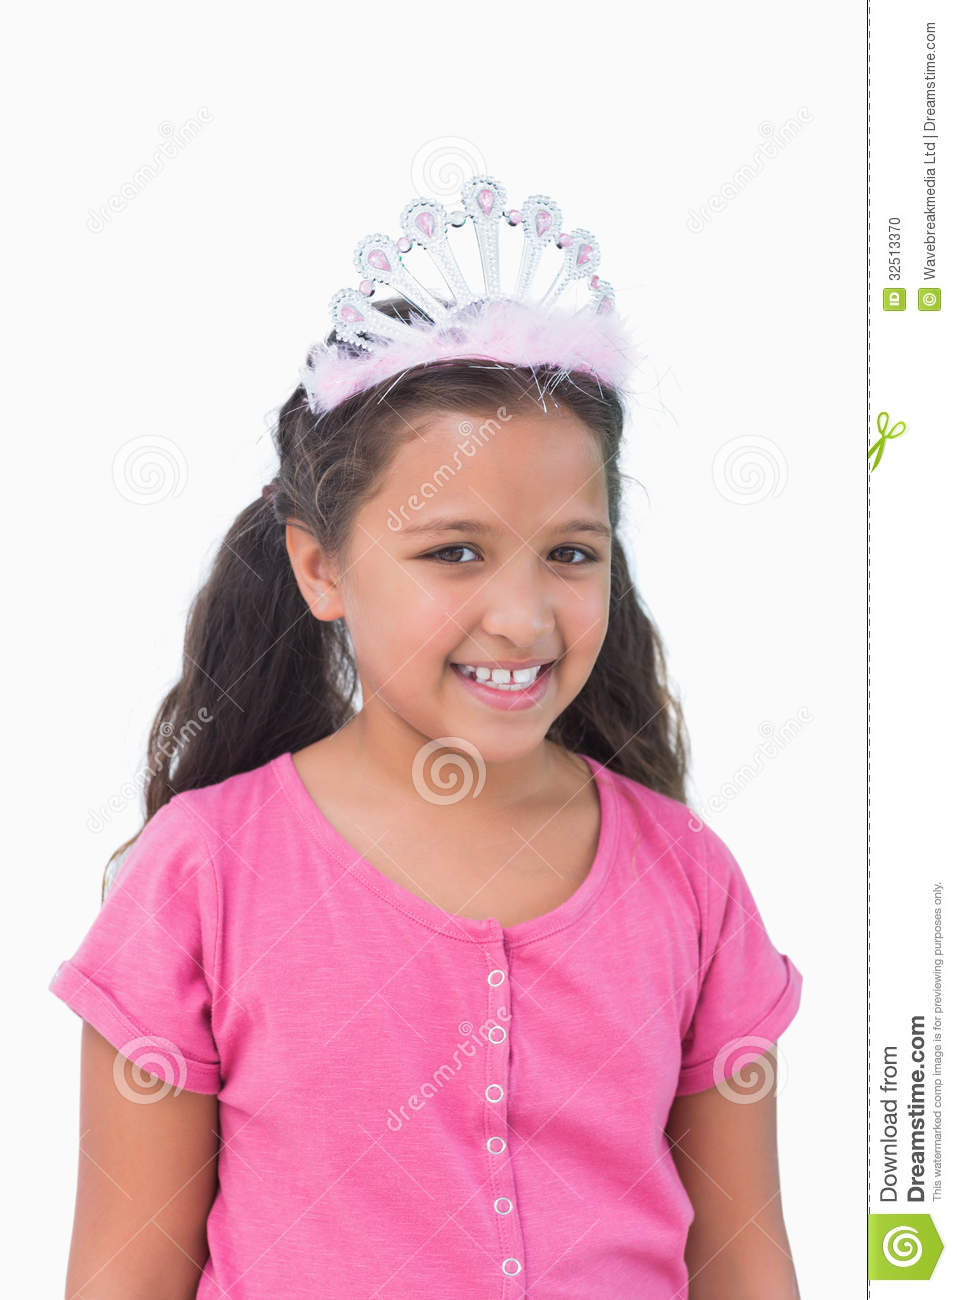 Smiling Little Girl Wearing Tiara For A Party Stock Photo